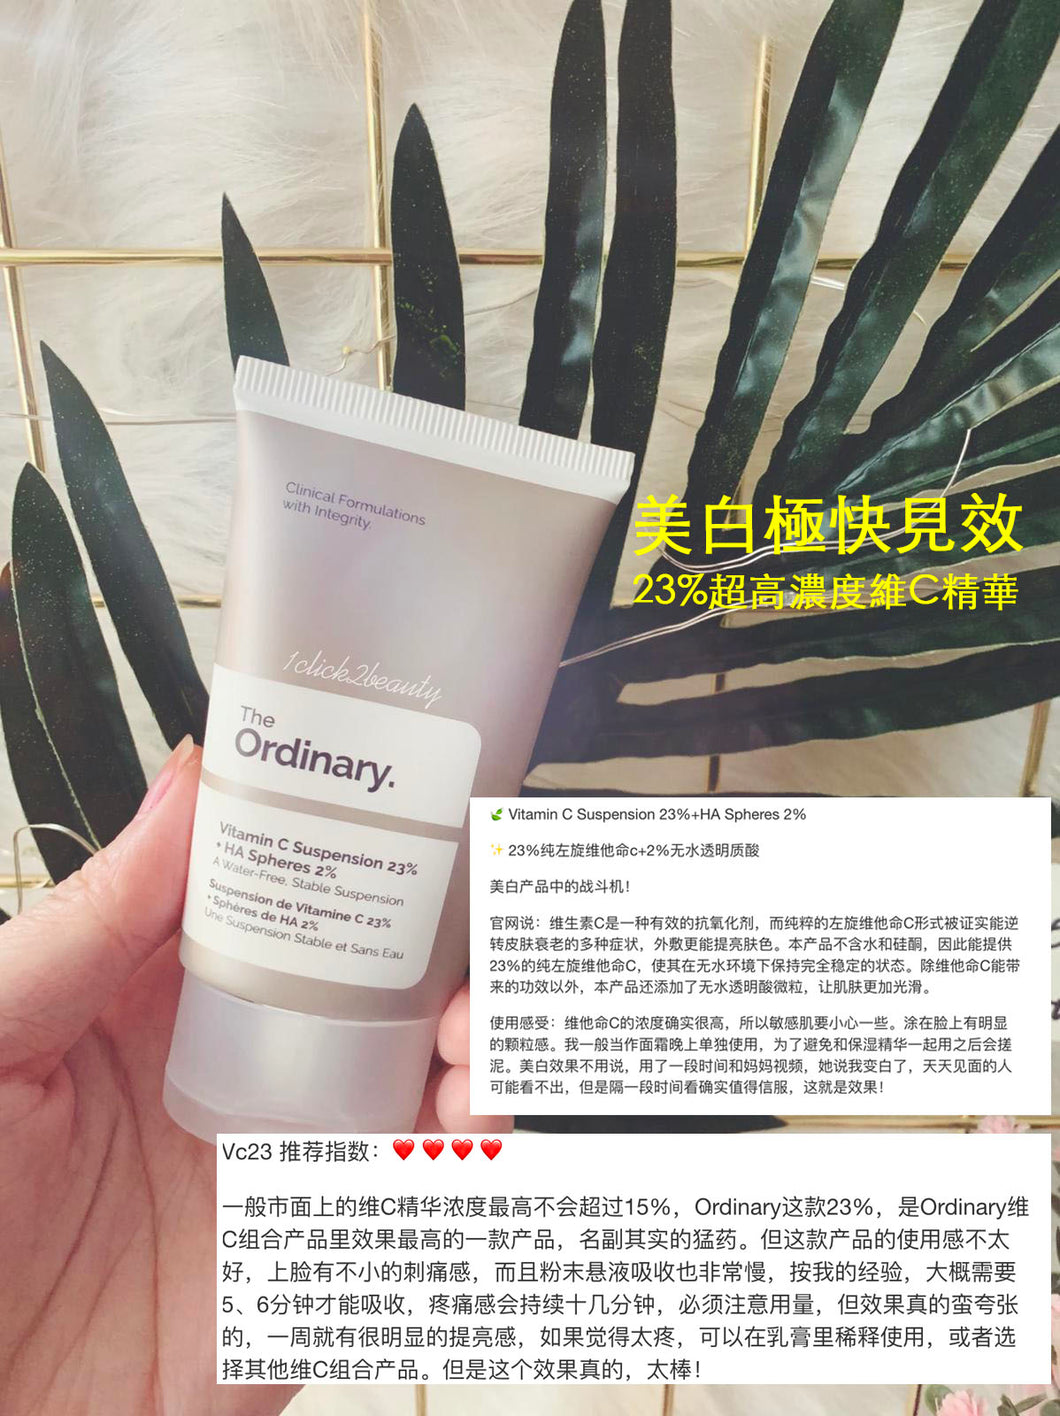 [超平價美白精華]THE ORDINARY Vitamin C Suspension 23% + HA Spheres 2% 23%維他命C懸液+2%透明質酸微粒精華 30ML - buy European skincare in Hong Kong - 1click2beauty